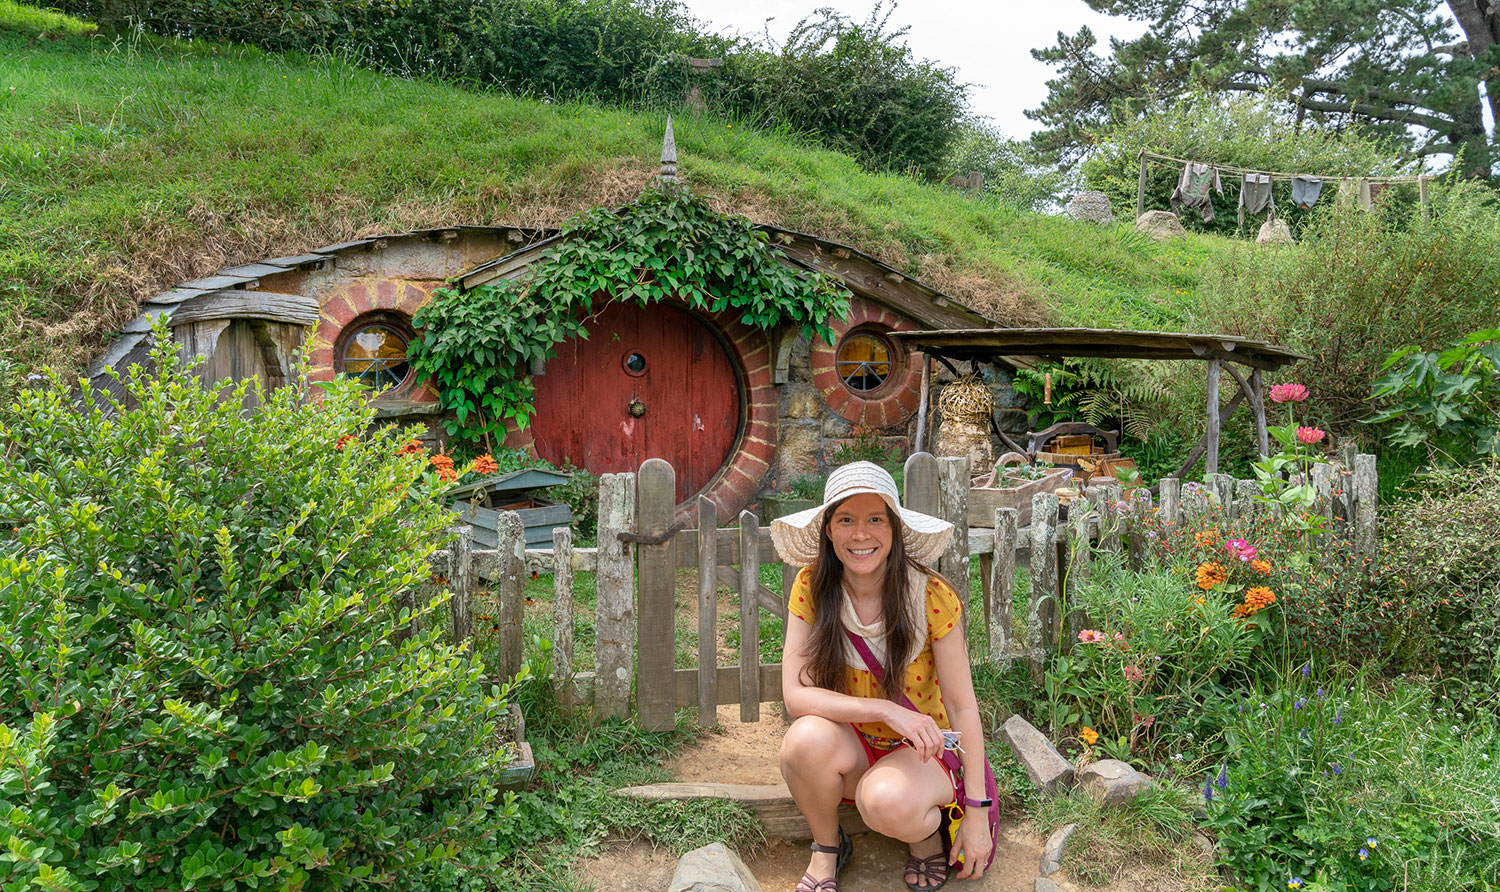 Thaneeya McArdle in front of a Hobbit hole in Hobbiton